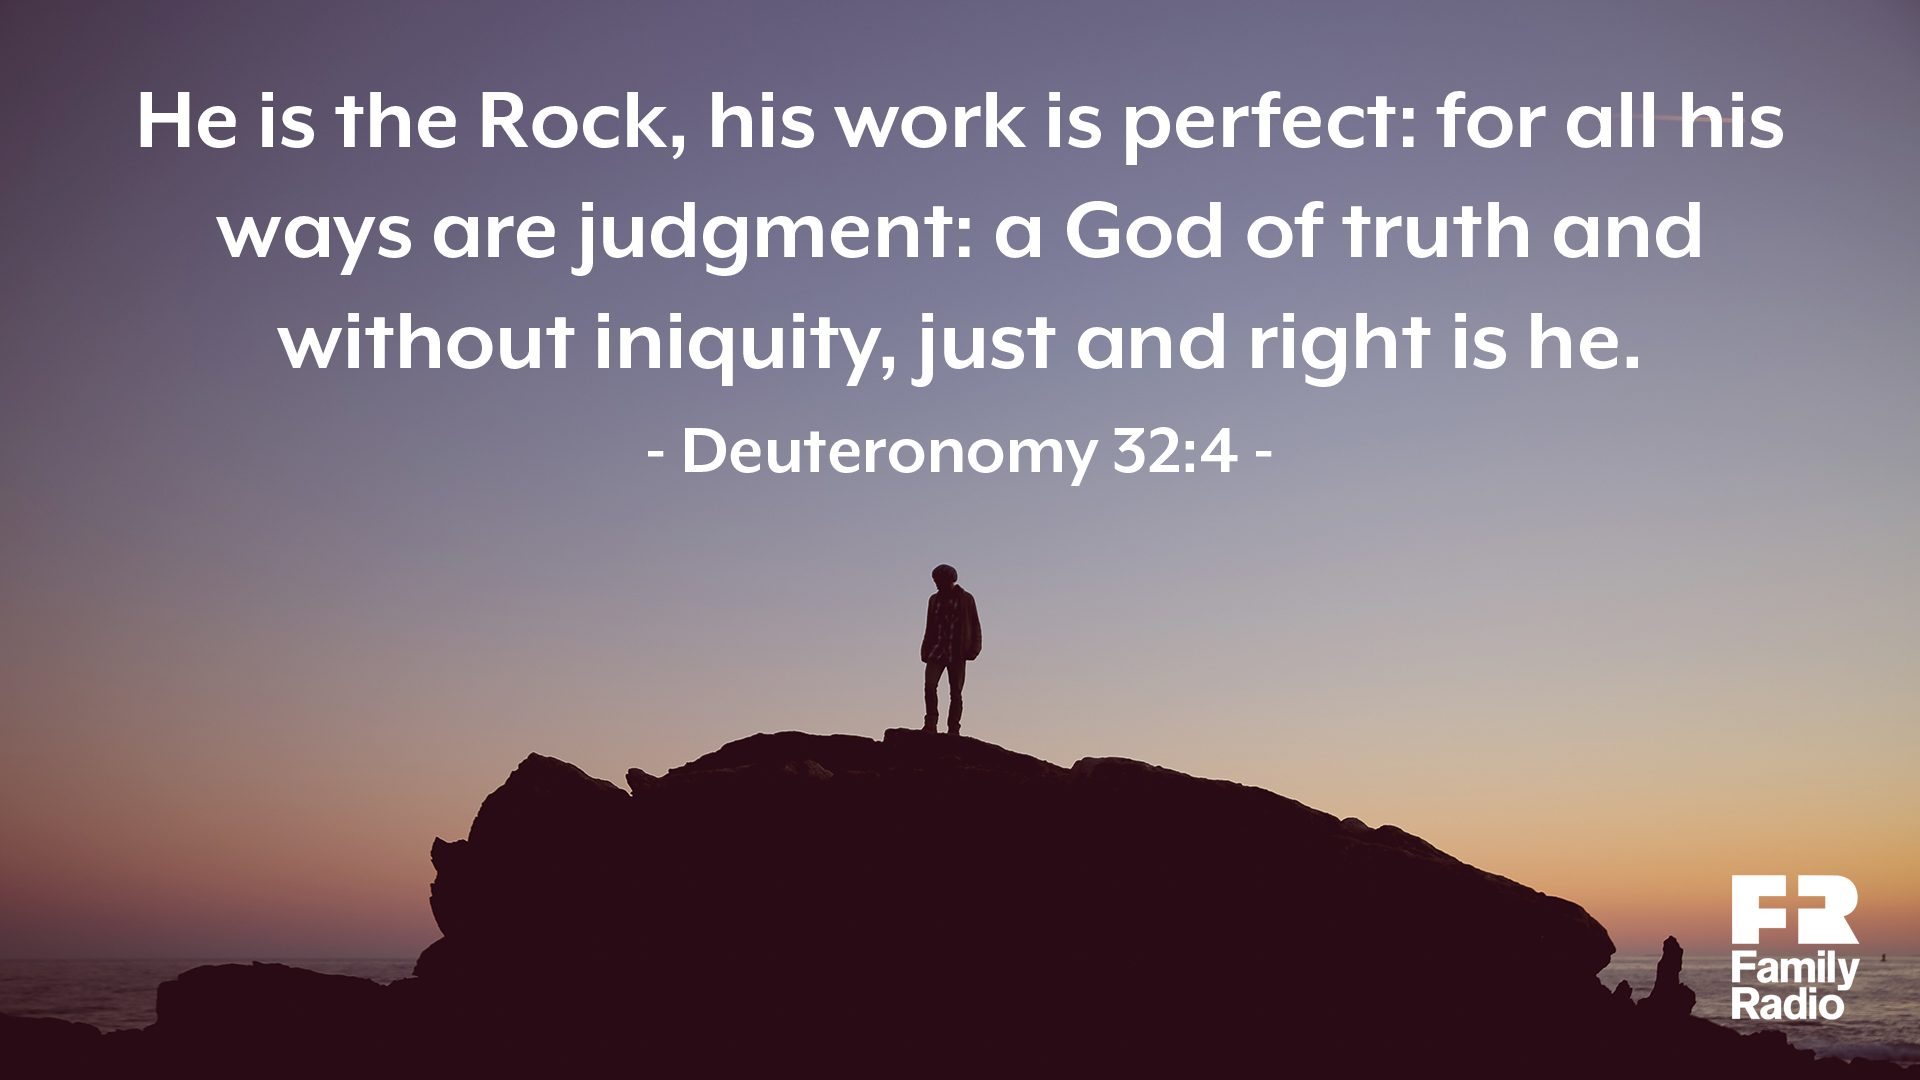 """He is the Rock, his work is perfect: for all his ways are judgment: a God of truth and with iniquity, just and right is he."""